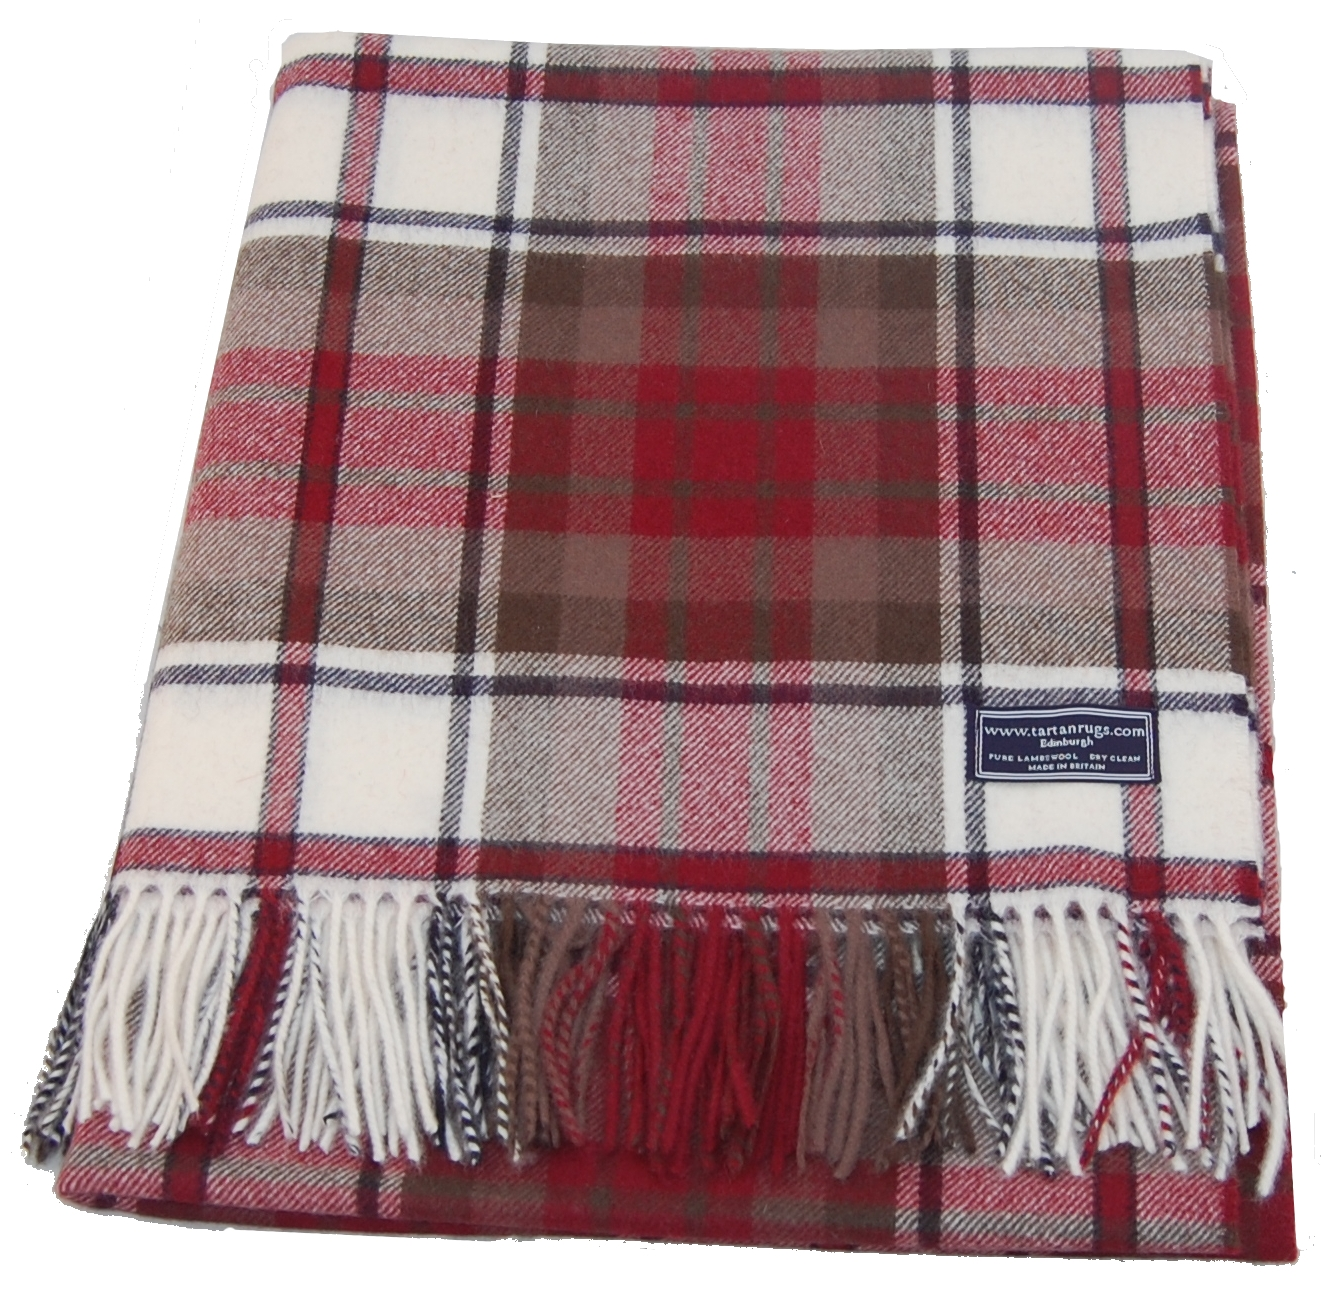 Bronte Dress Macduff Tartan Lambswool Travel Rug